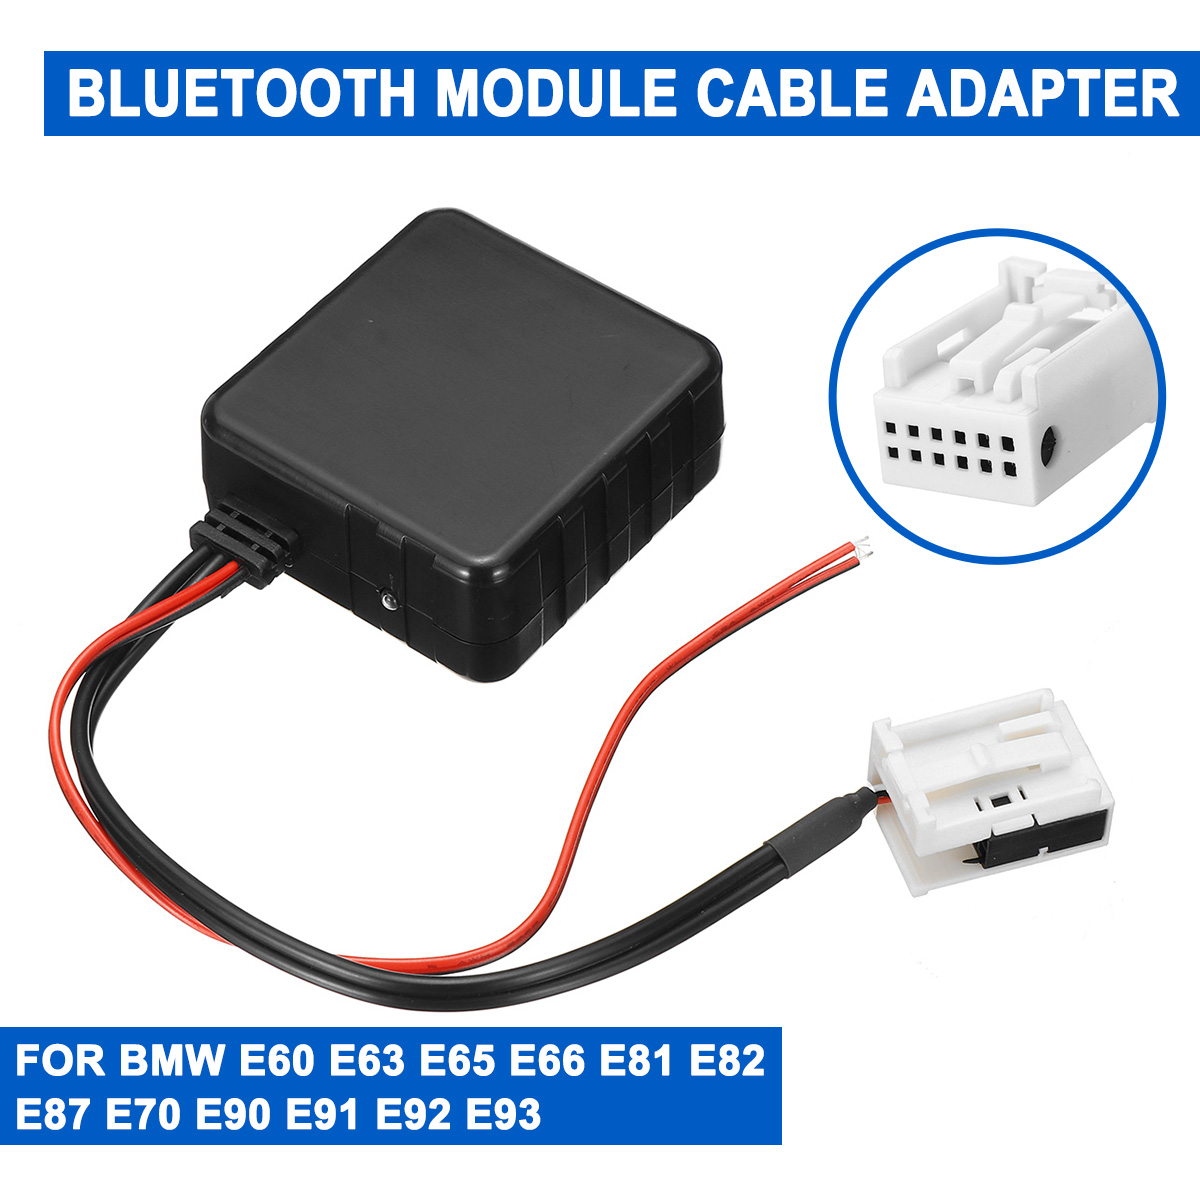 For <font><b>BMW</b></font> E60-E66 E70 E82 E87 E90 E92 12V <font><b>Car</b></font> <font><b>bluetooth</b></font> 5.0 Module AUX Cable Adapter Audio Radio Stereo AUX-IN Plastic image